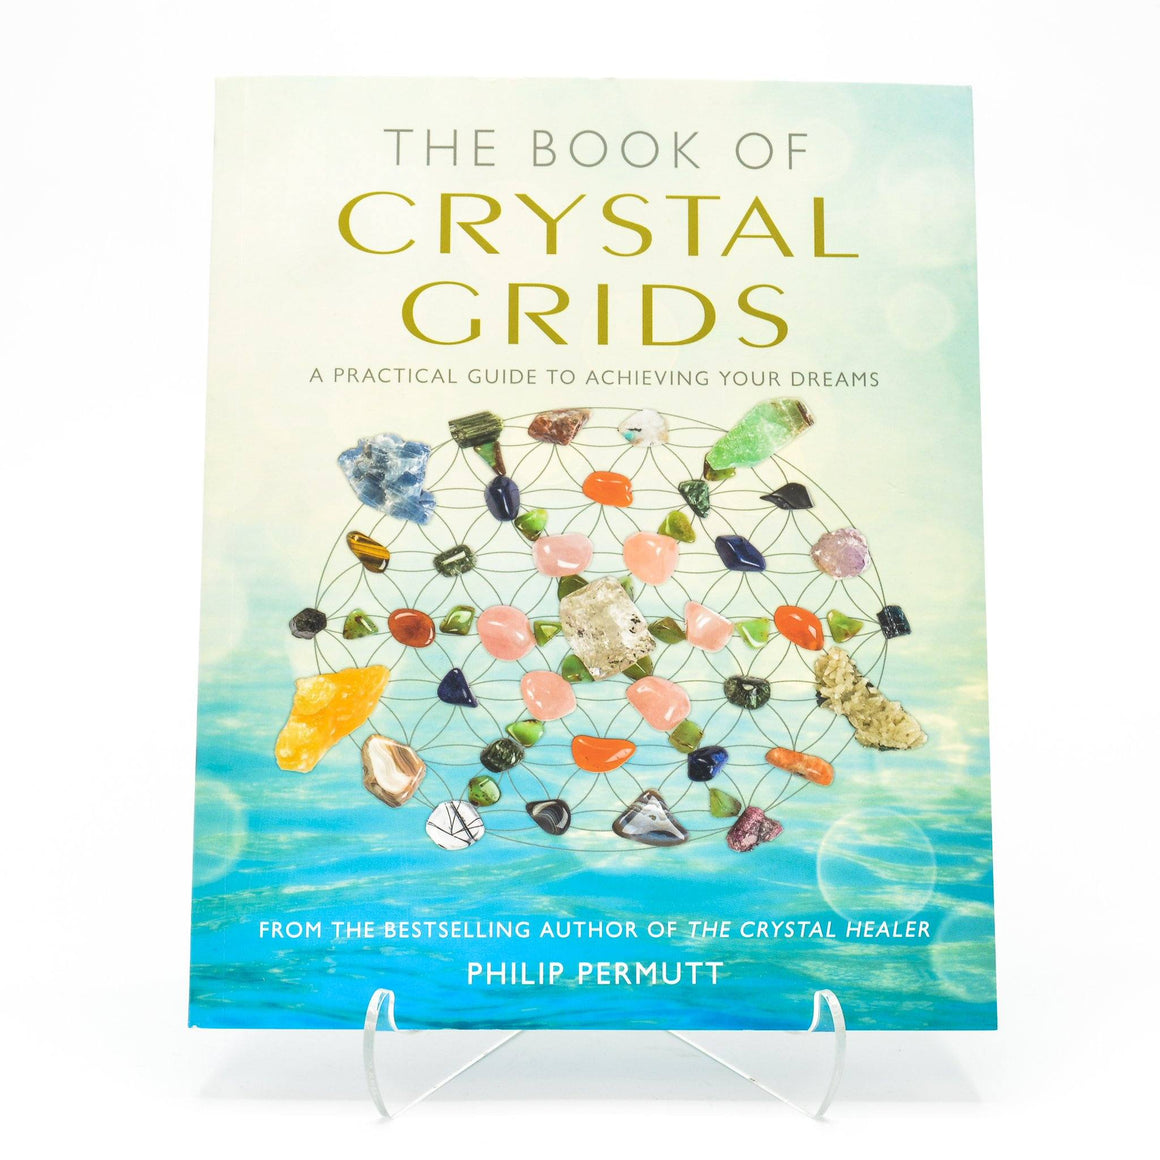 Book of Crystal Grids, The, Philip Permutt